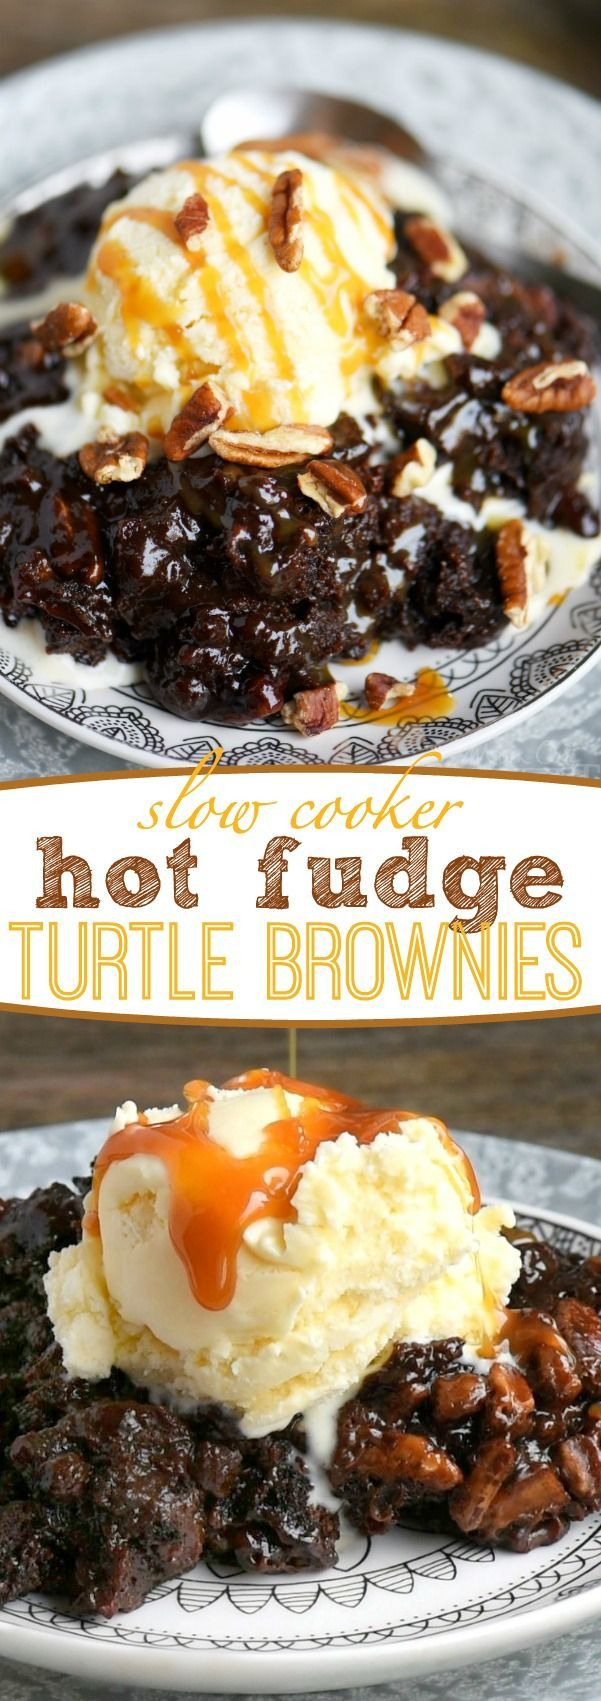 Fabulously gooey and outrageously delicious, these Slow Cooker Hot Fudge Turtle Brownies are going